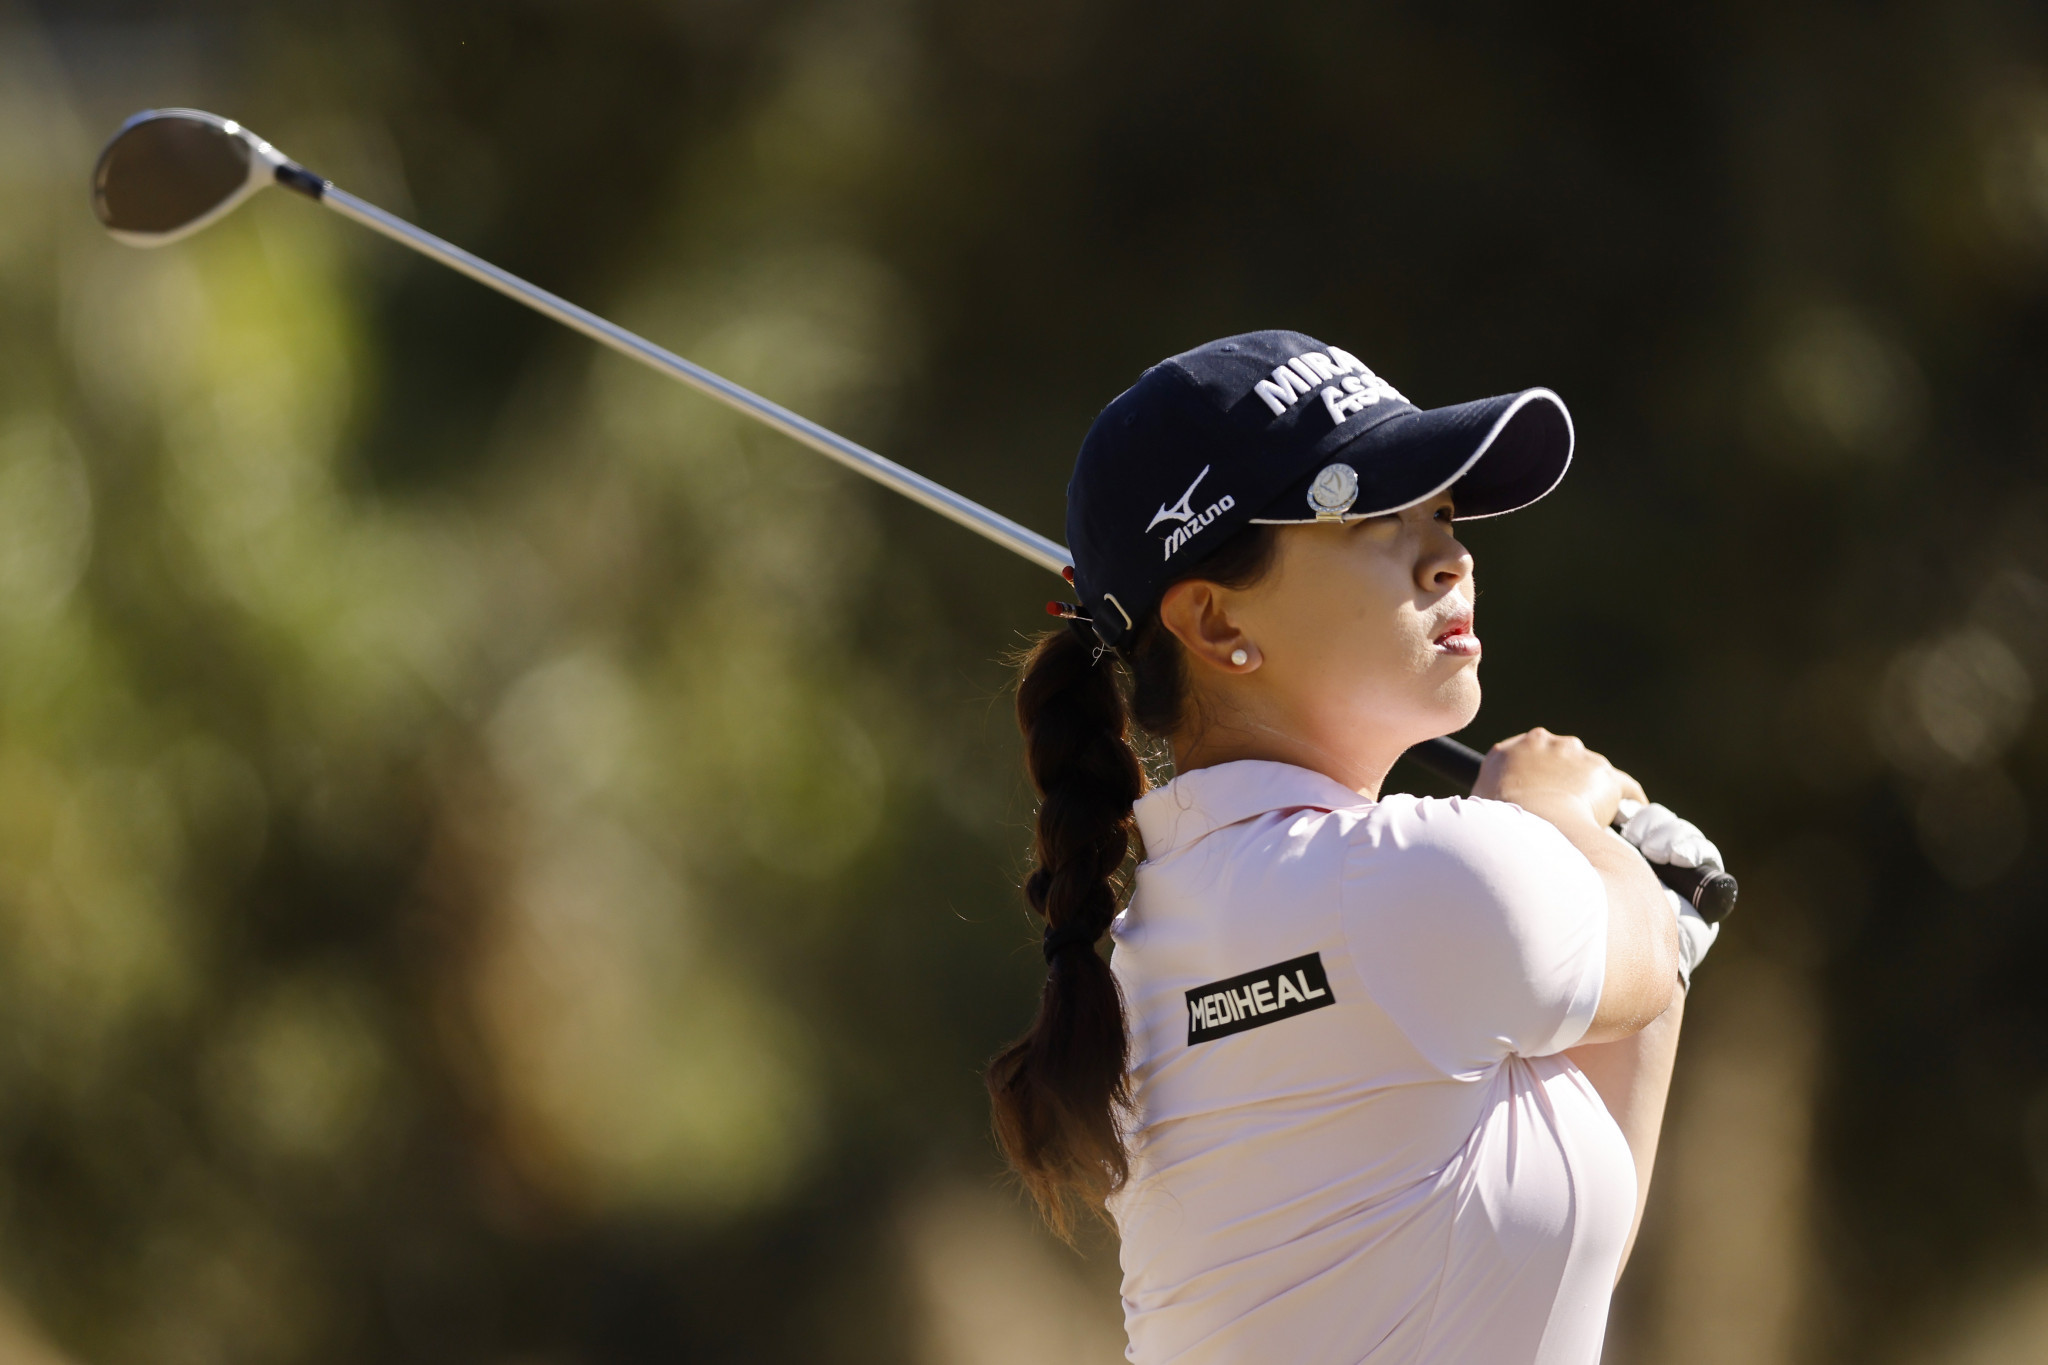 Defending champion Kim holds one-shot lead ahead of Tour Championship final round